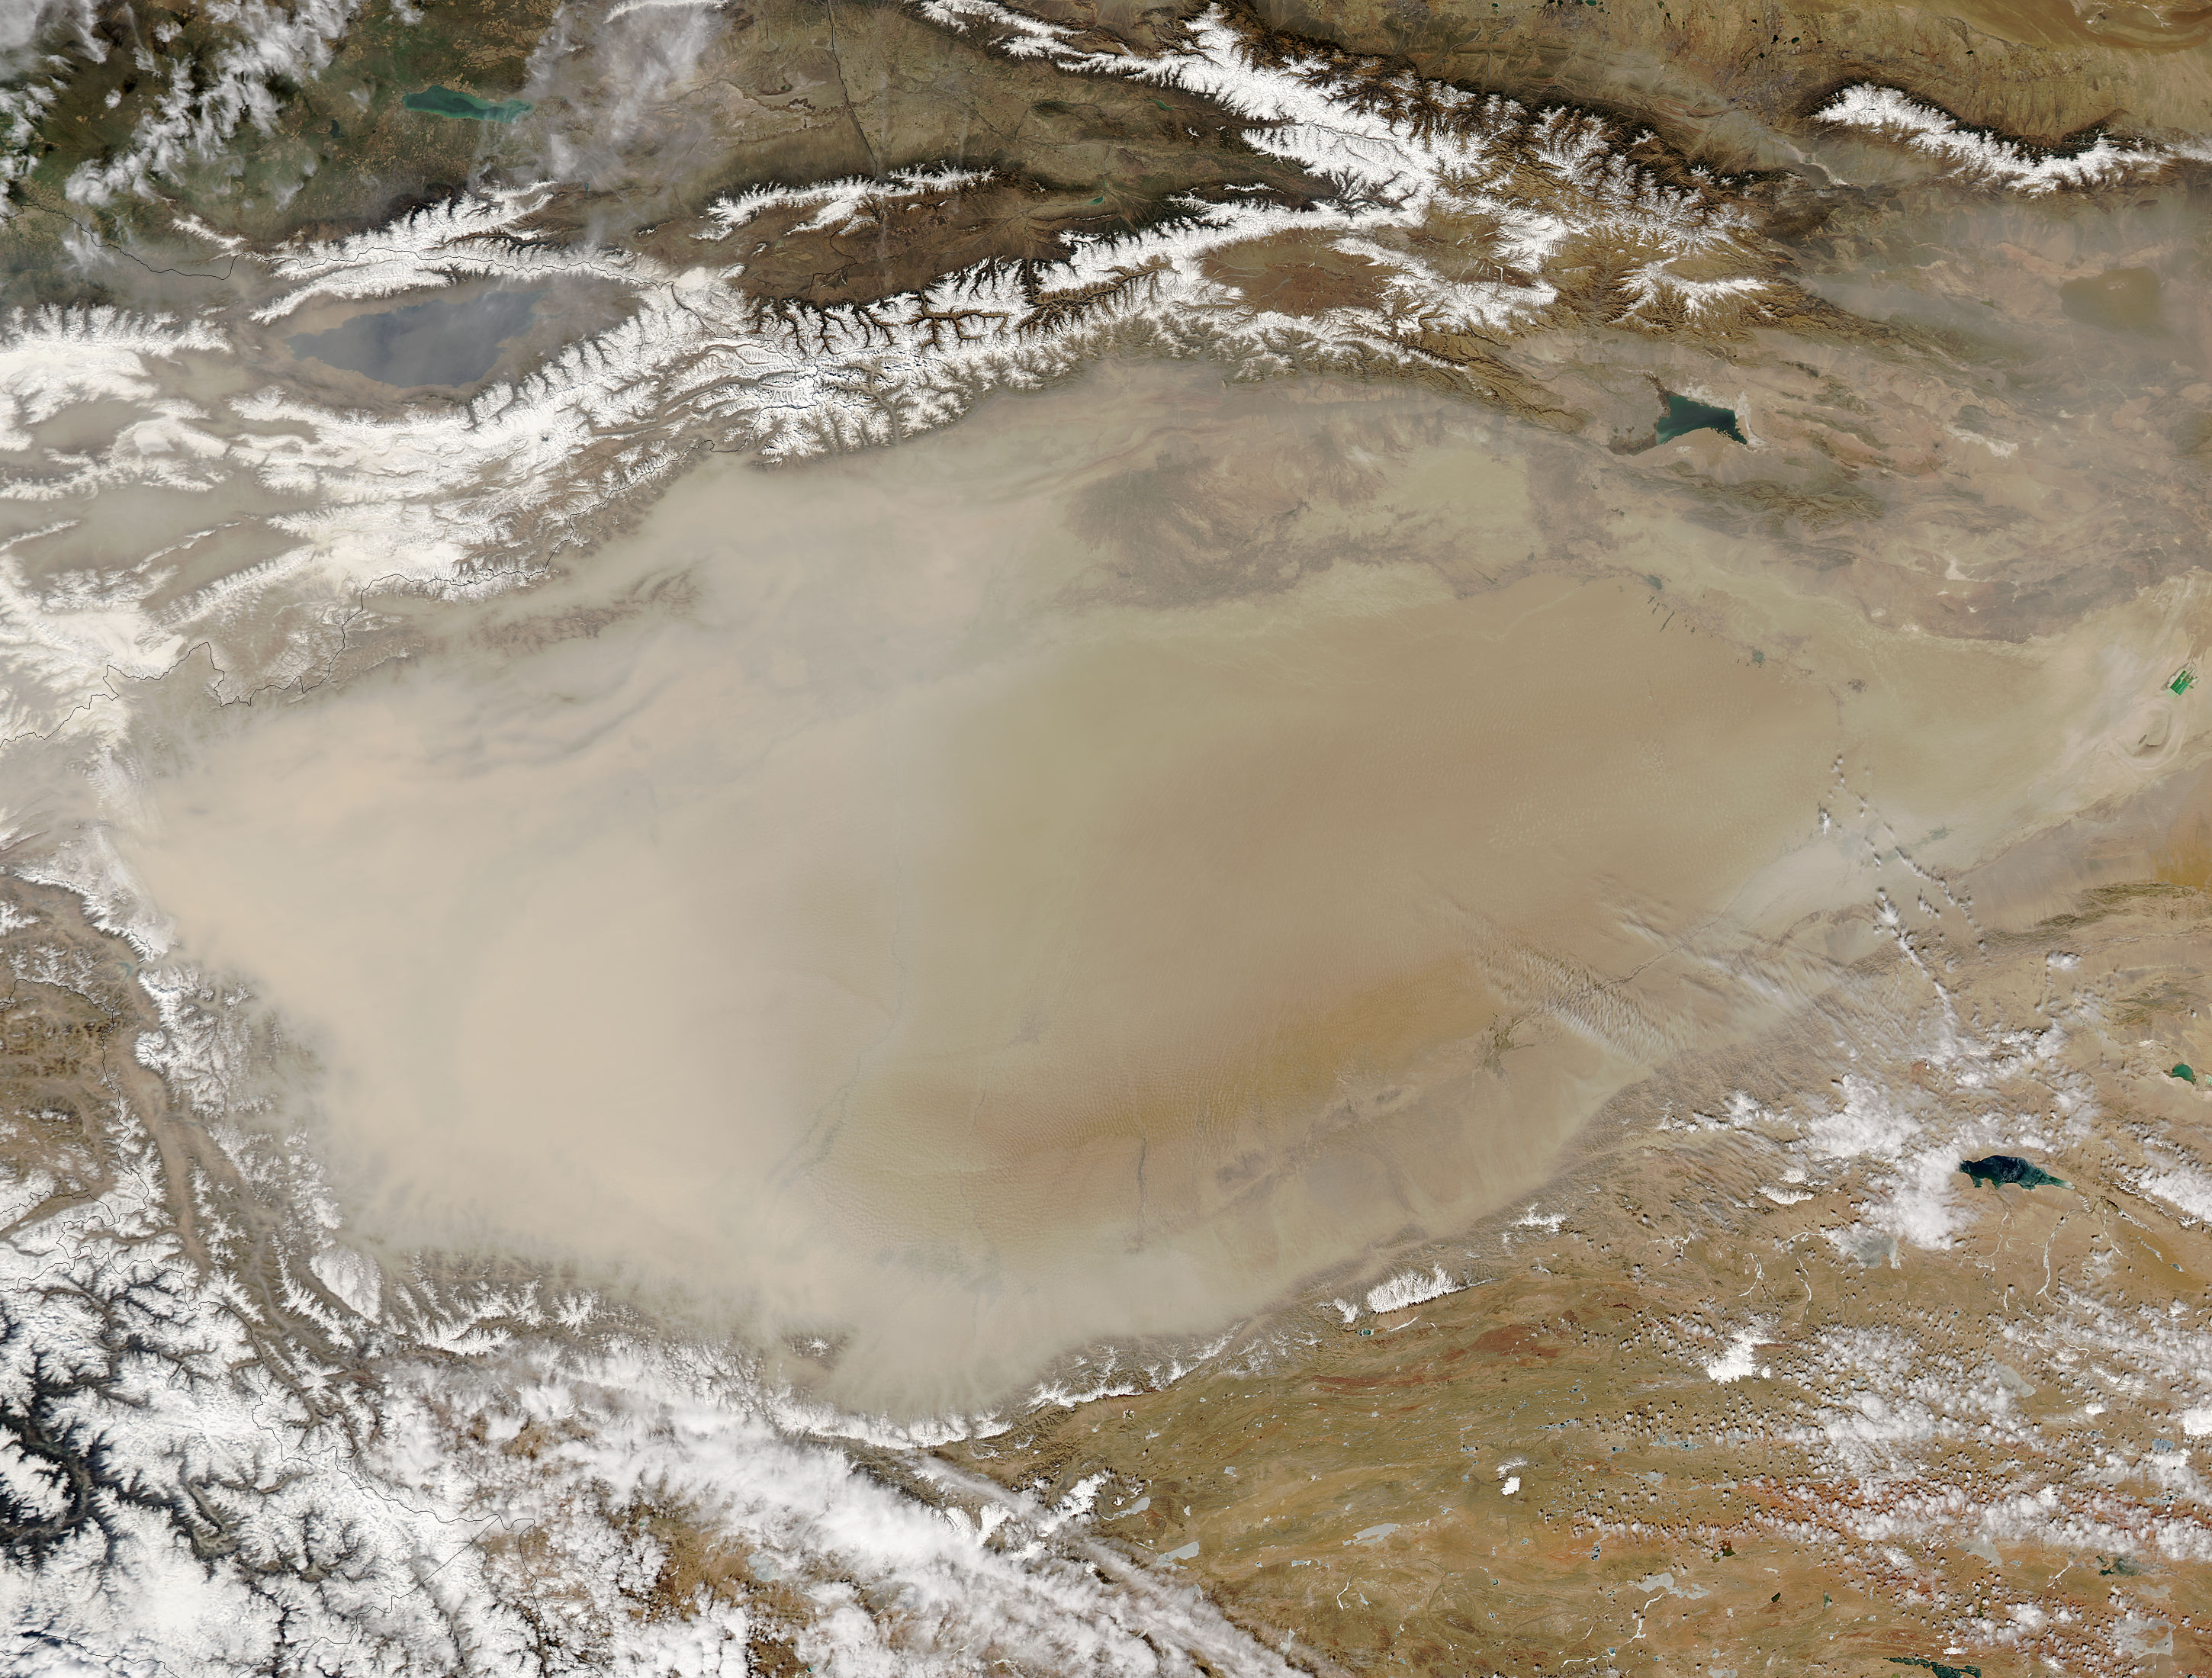 Image of Aqua/MODIS 2018/096 07:30 UTC Dust storm in Taklimakan Desert, Western China, Pixel size 500m